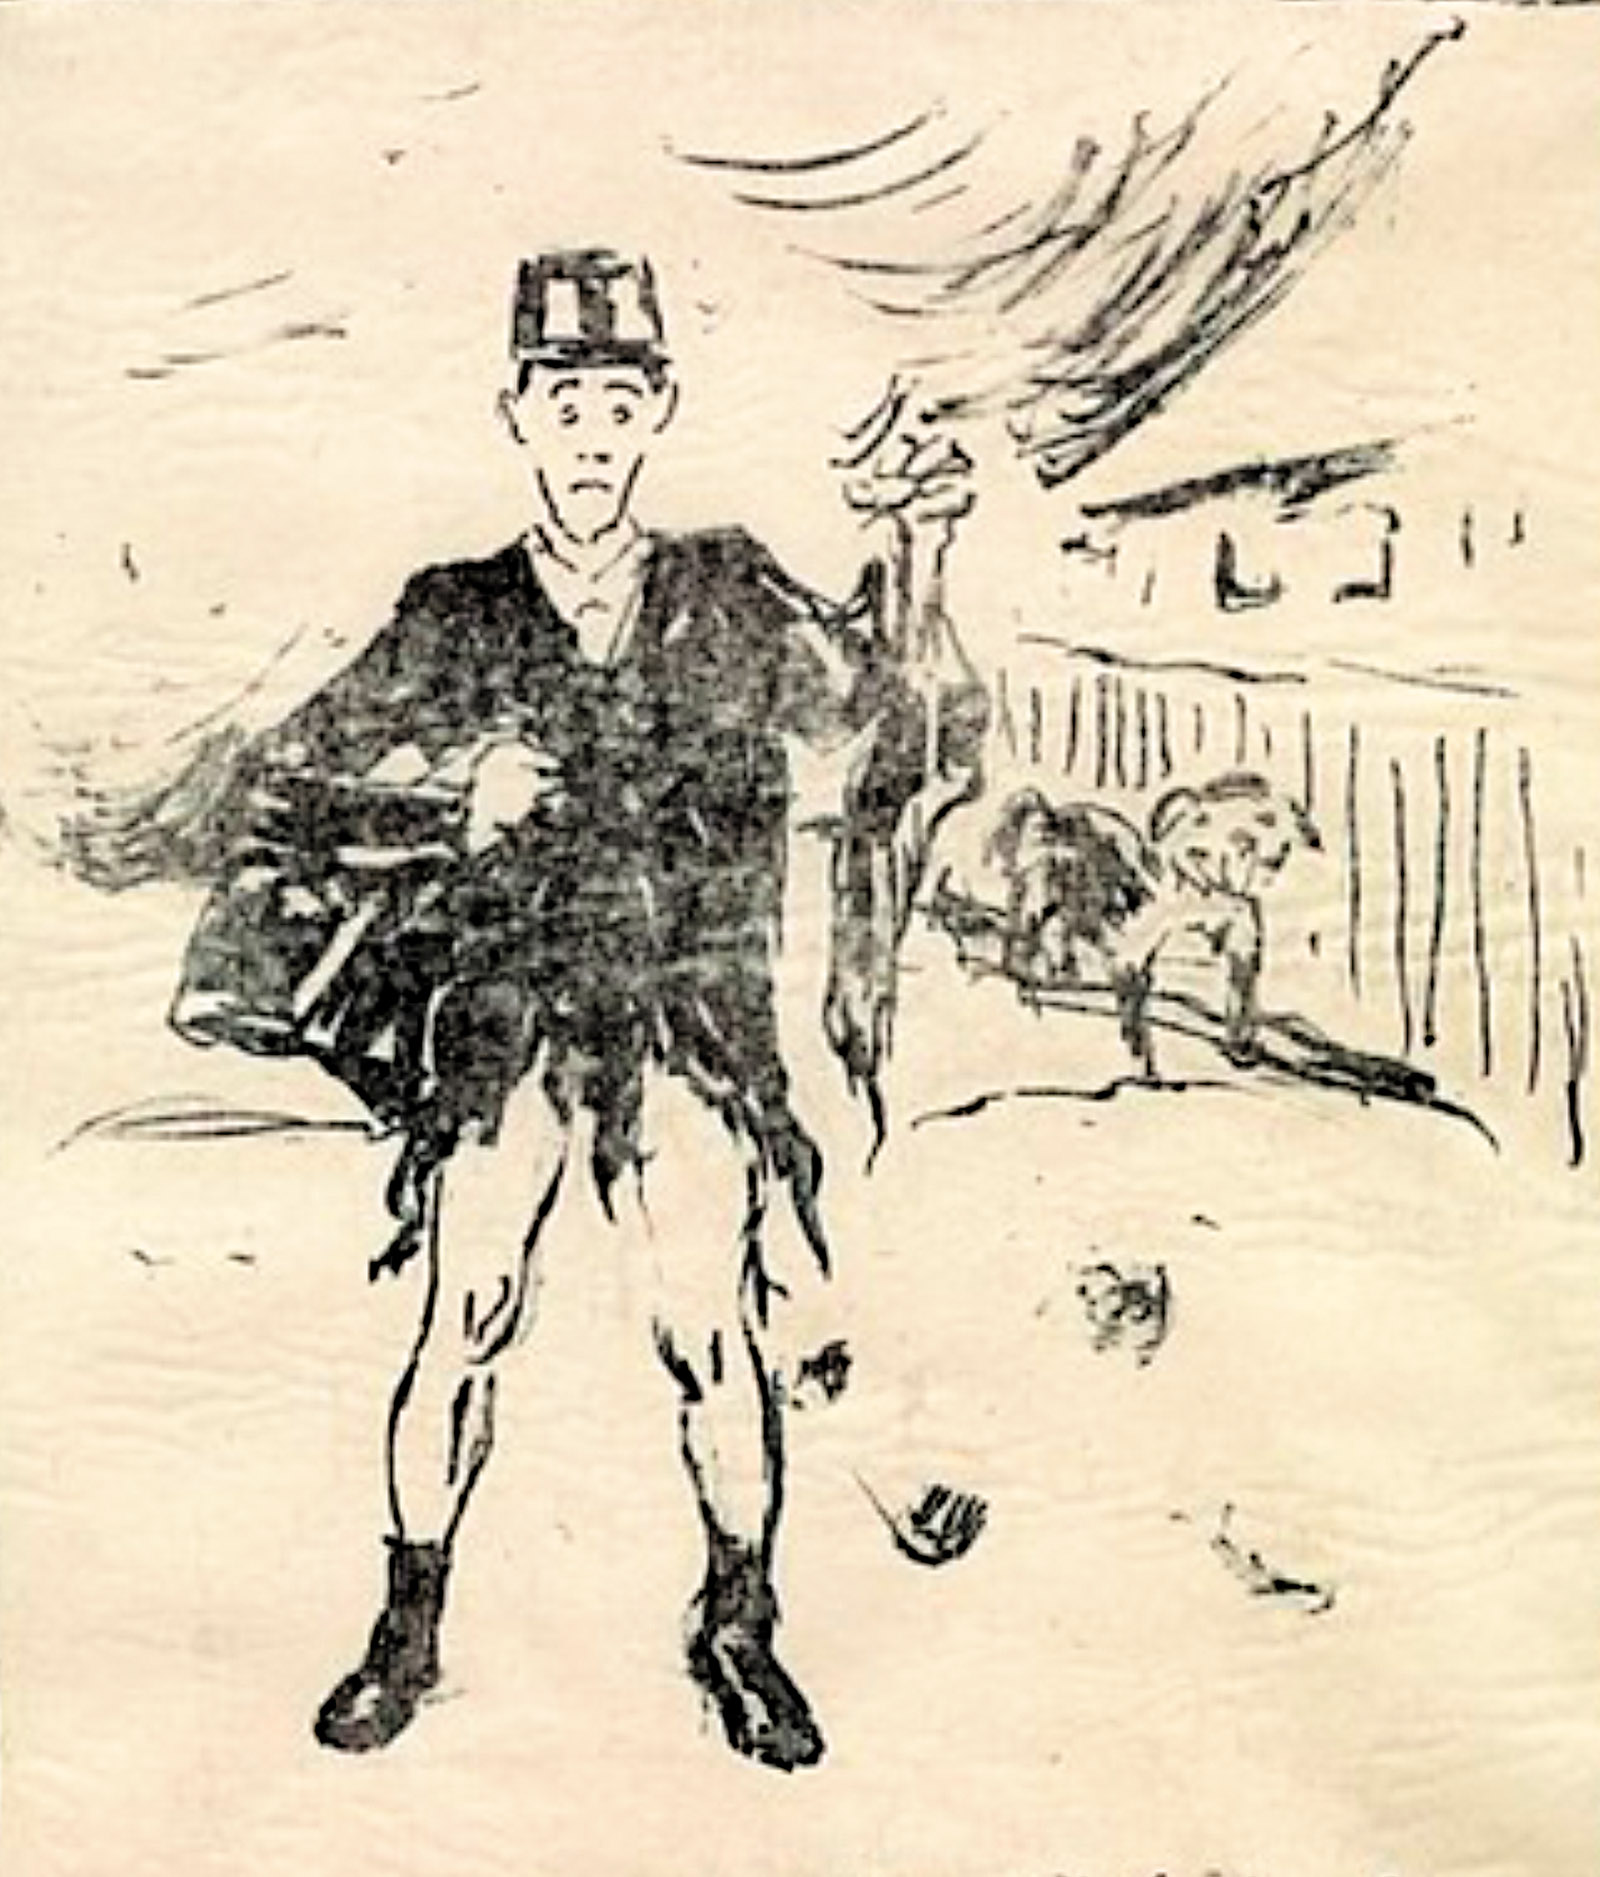 The Dog Attacking the Postman; illustration by Edvard Munch